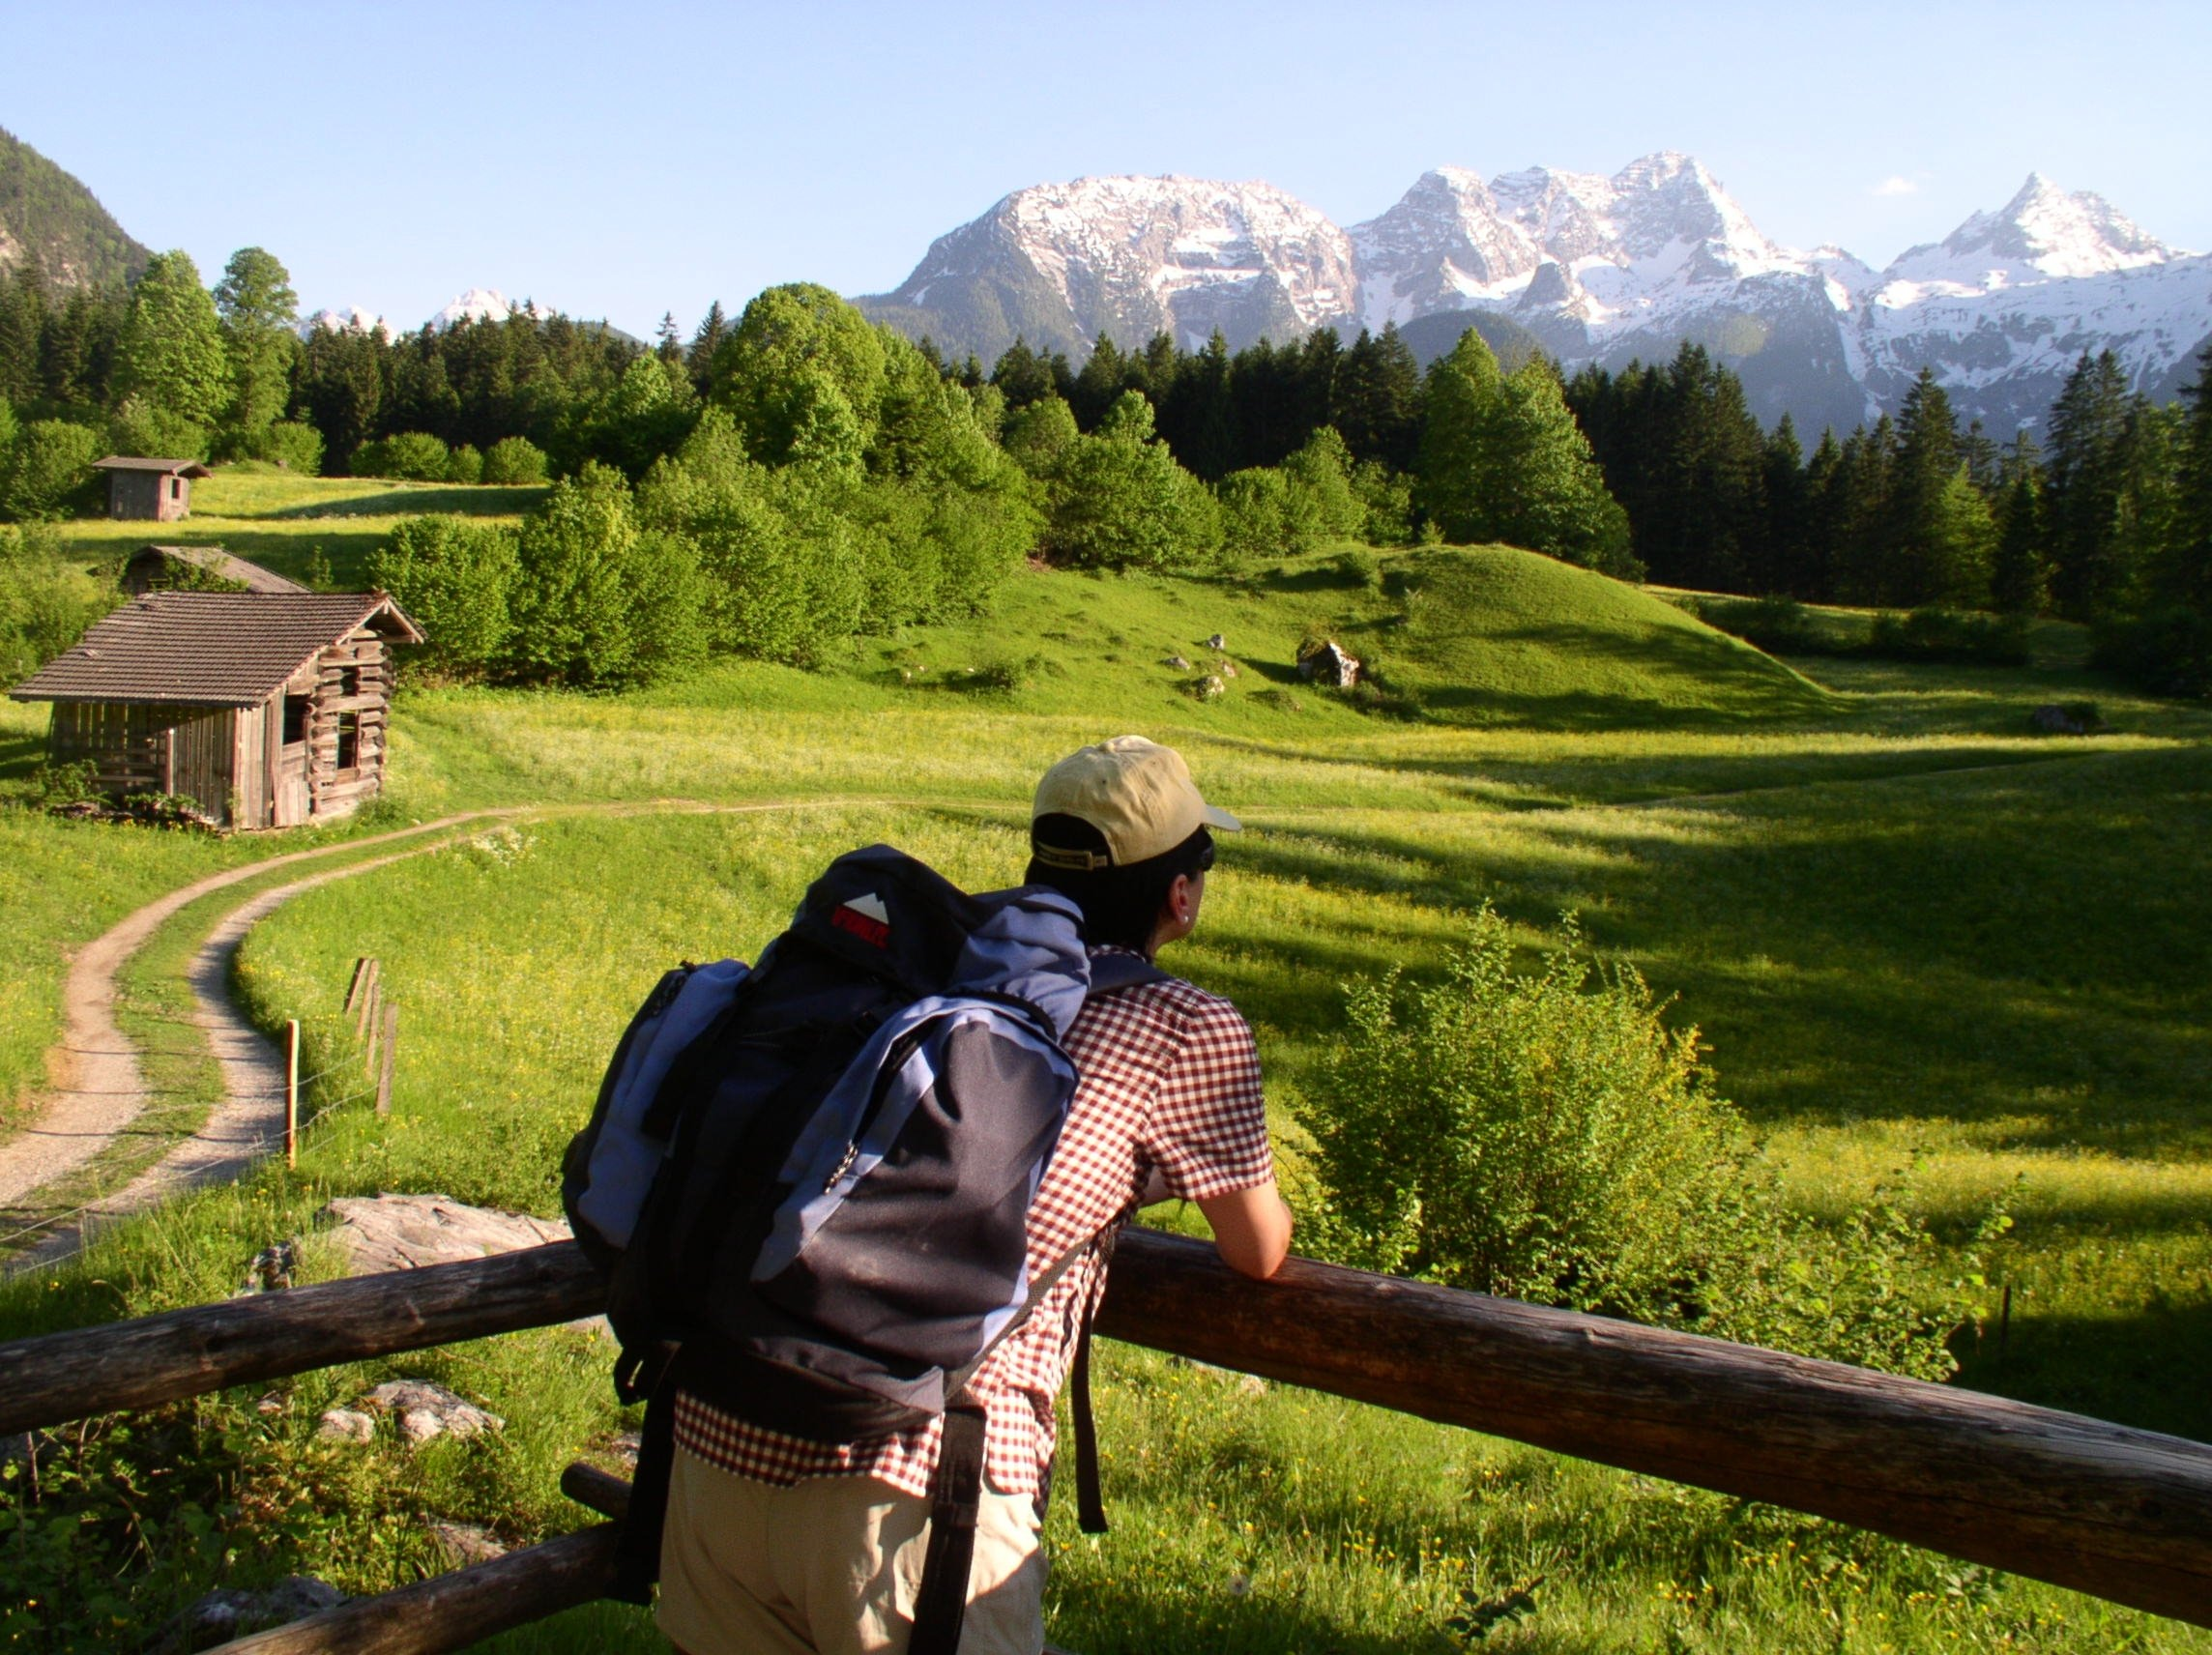 8c73e21061b4 The Way of St James in Tyrol | Self Guided Walking Holiday in Austria